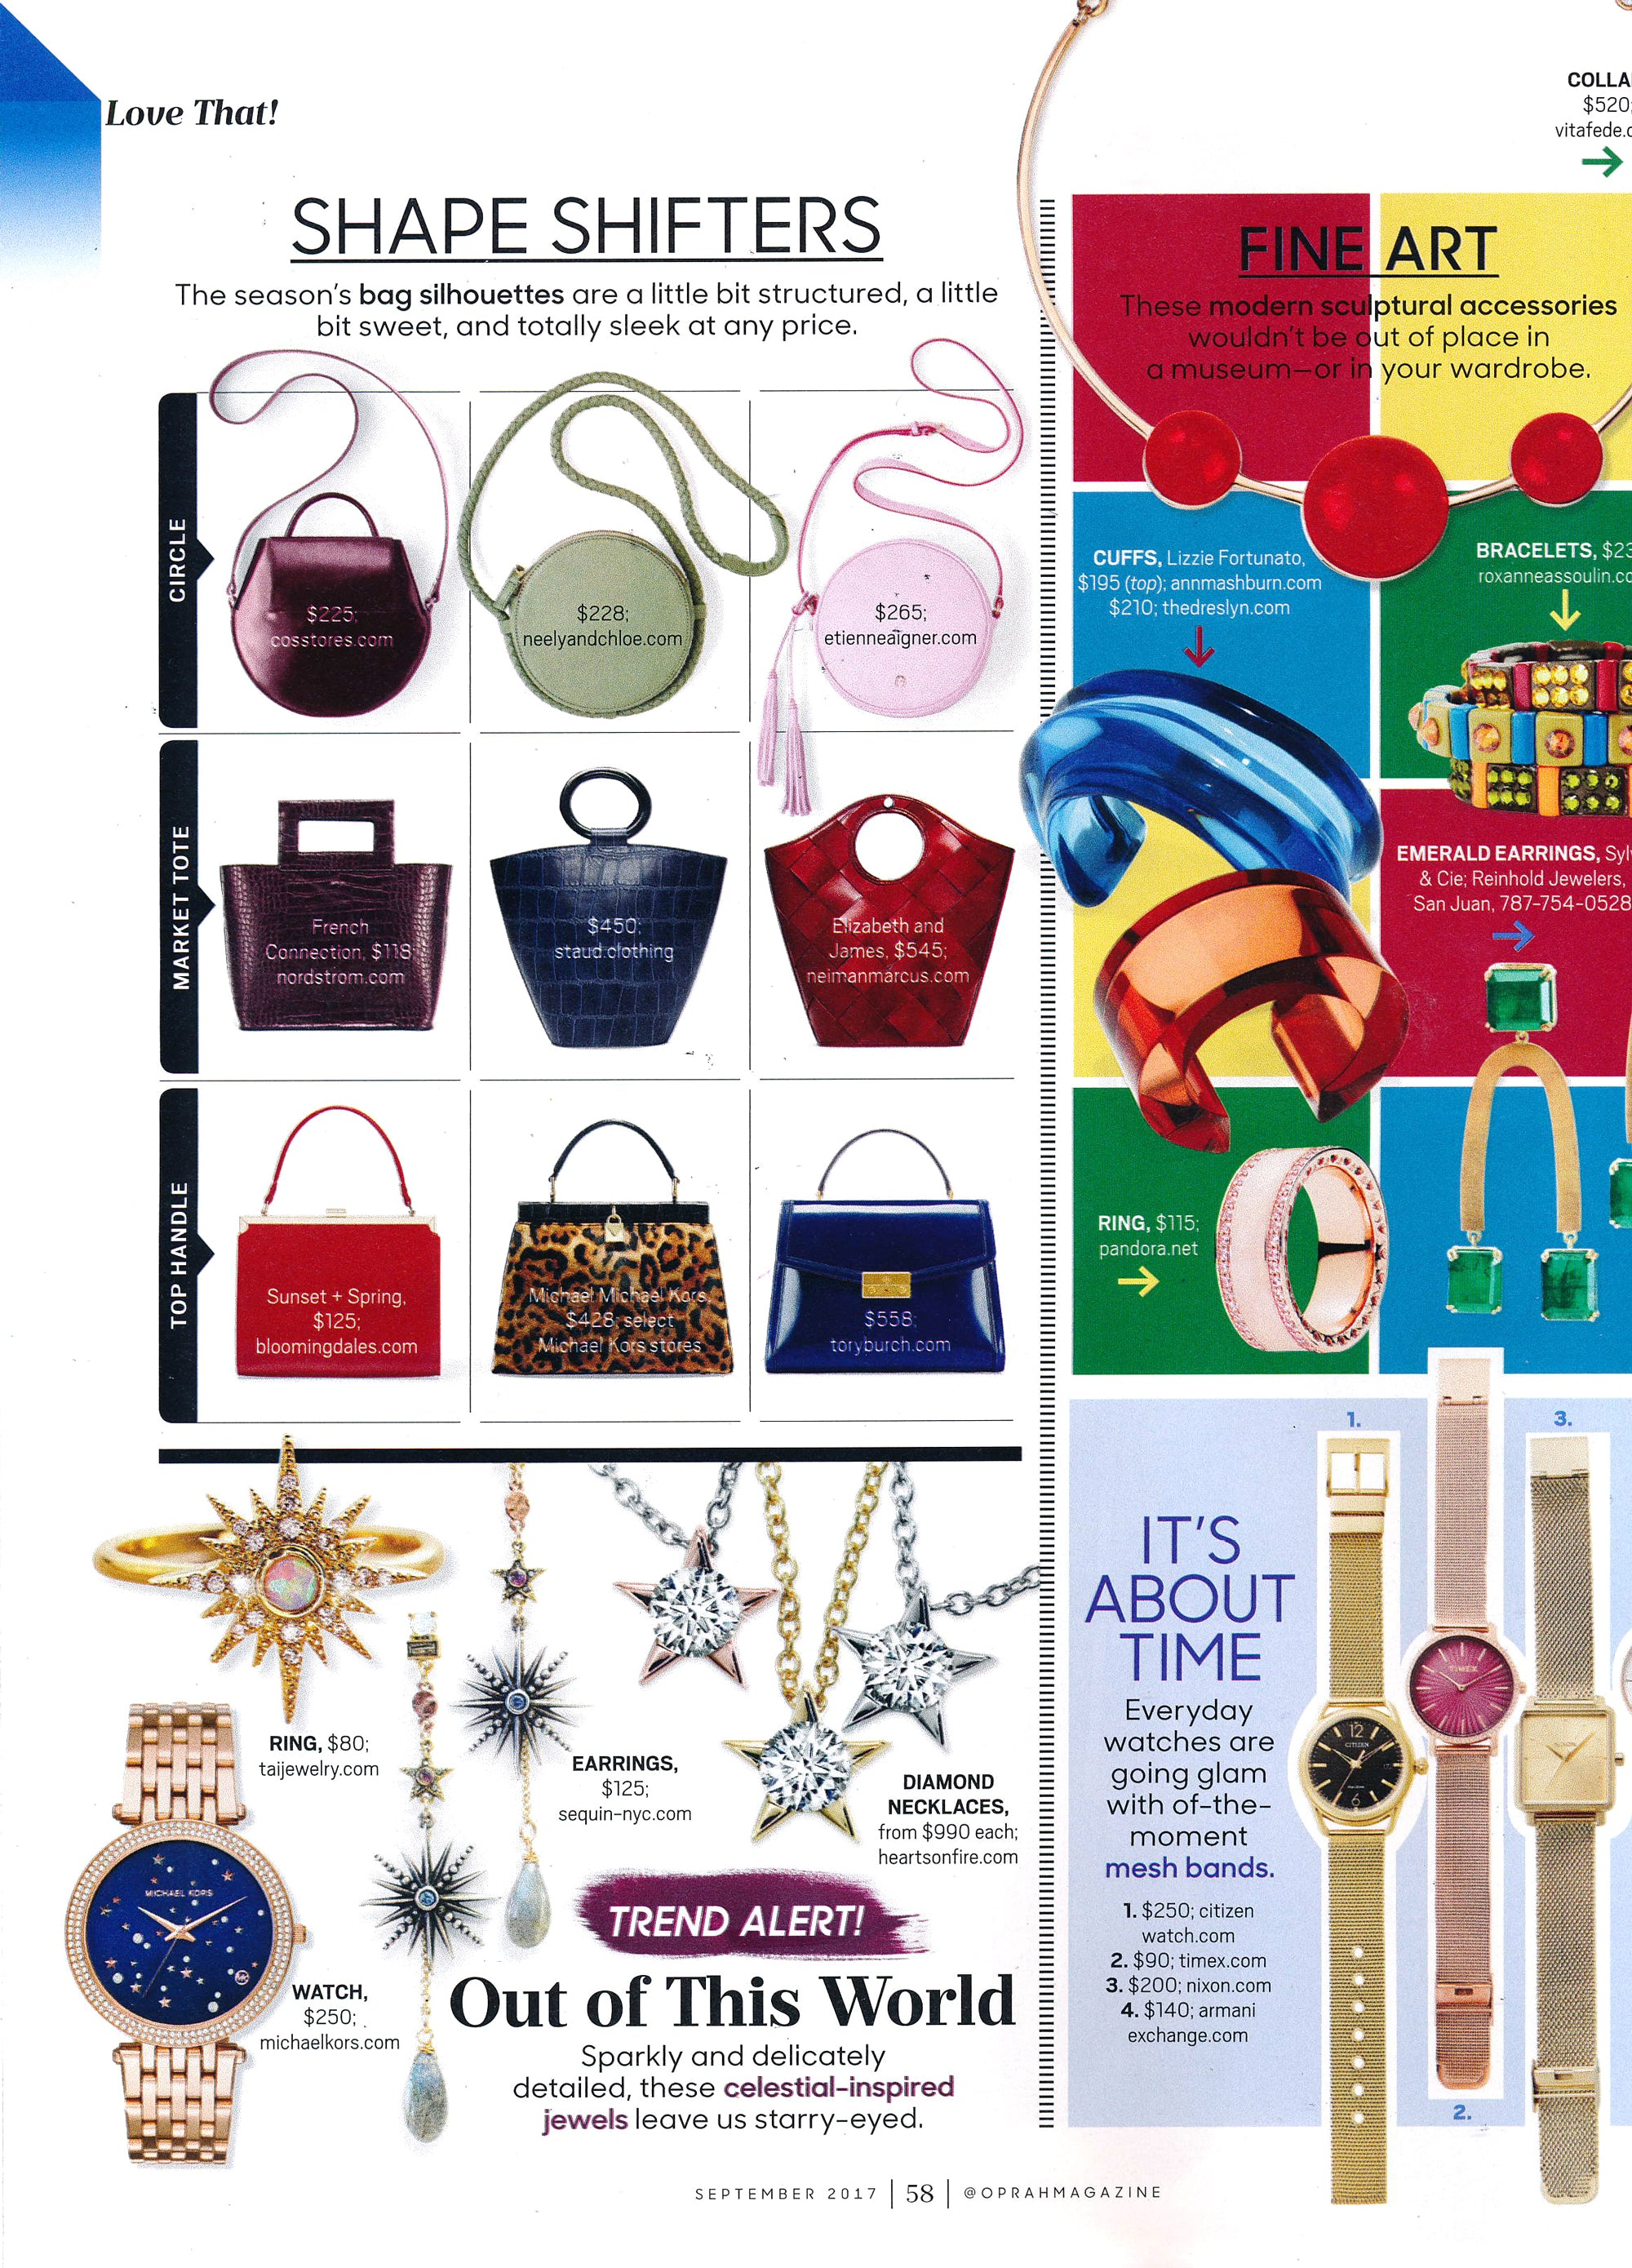 Sequin Earrings Featured in the September Issue of O Magazine